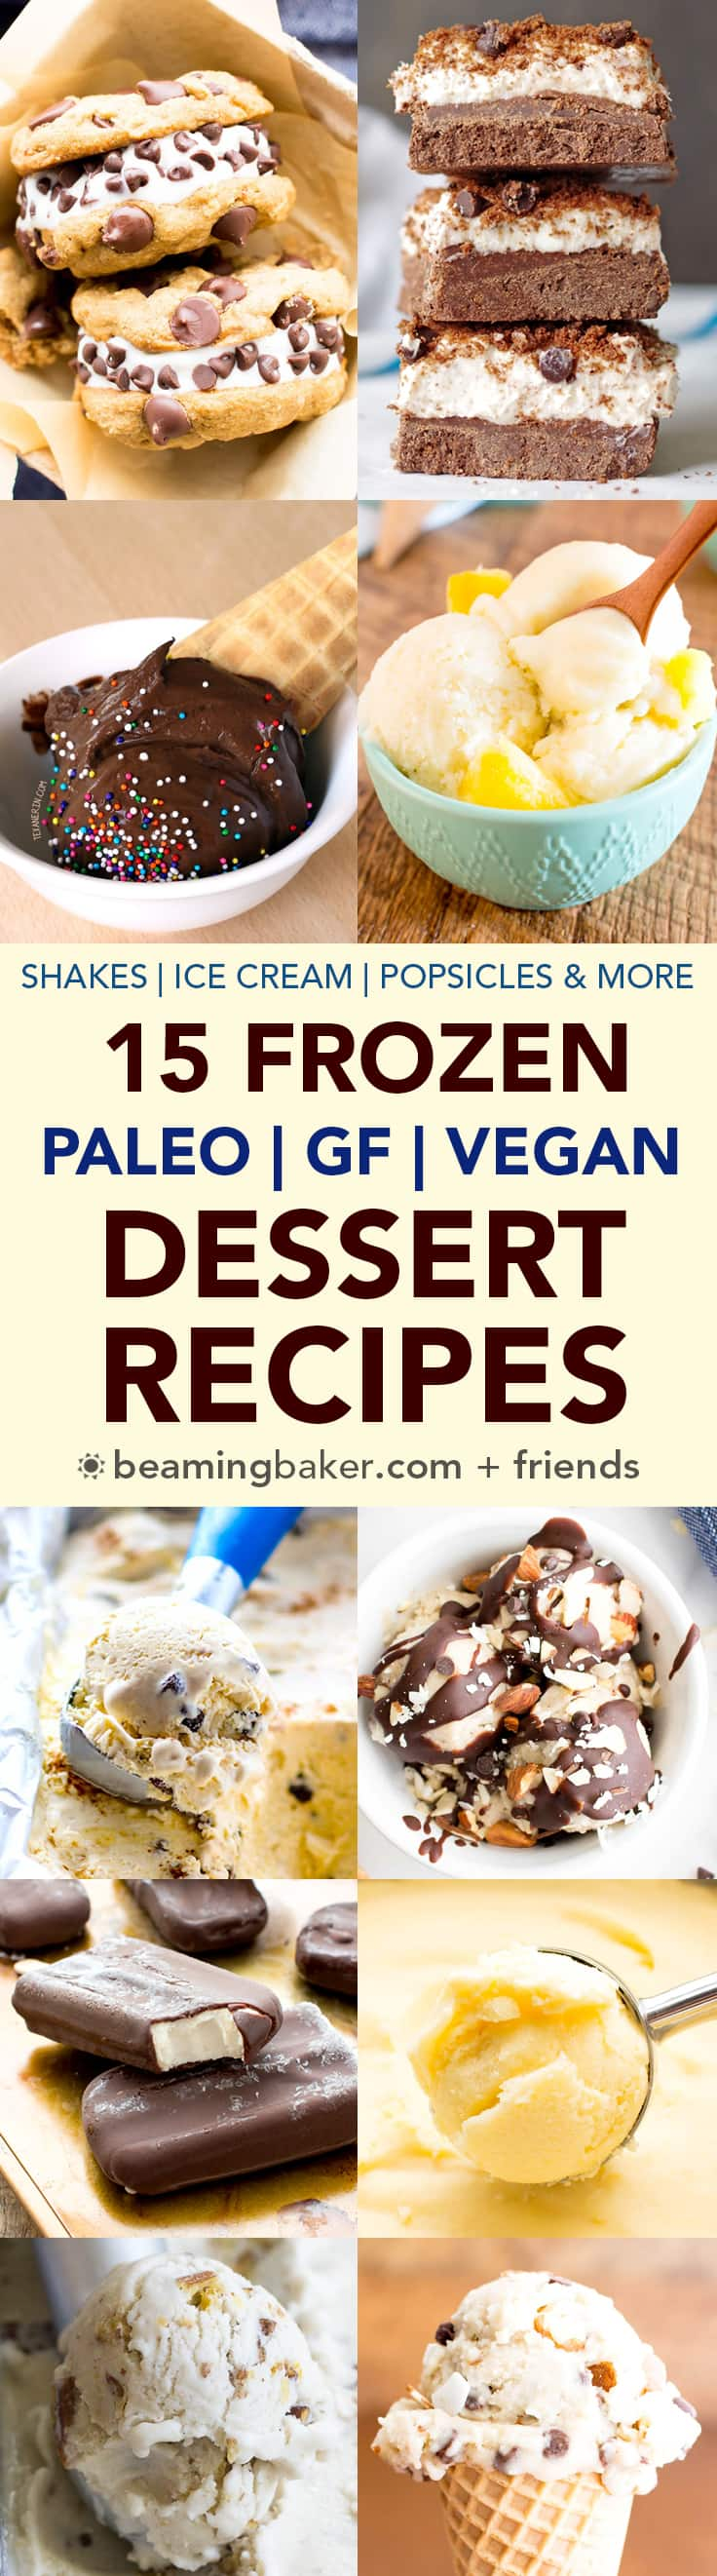 15 Delicious Paleo Vegan Frozen Desserts (V, GF, DF): a roundup of easy paleo vegan frozen dessert recipes to cool you down this summer! #Paleo #Vegan #DairyFree #GlutenFree | BeamingBaker.com